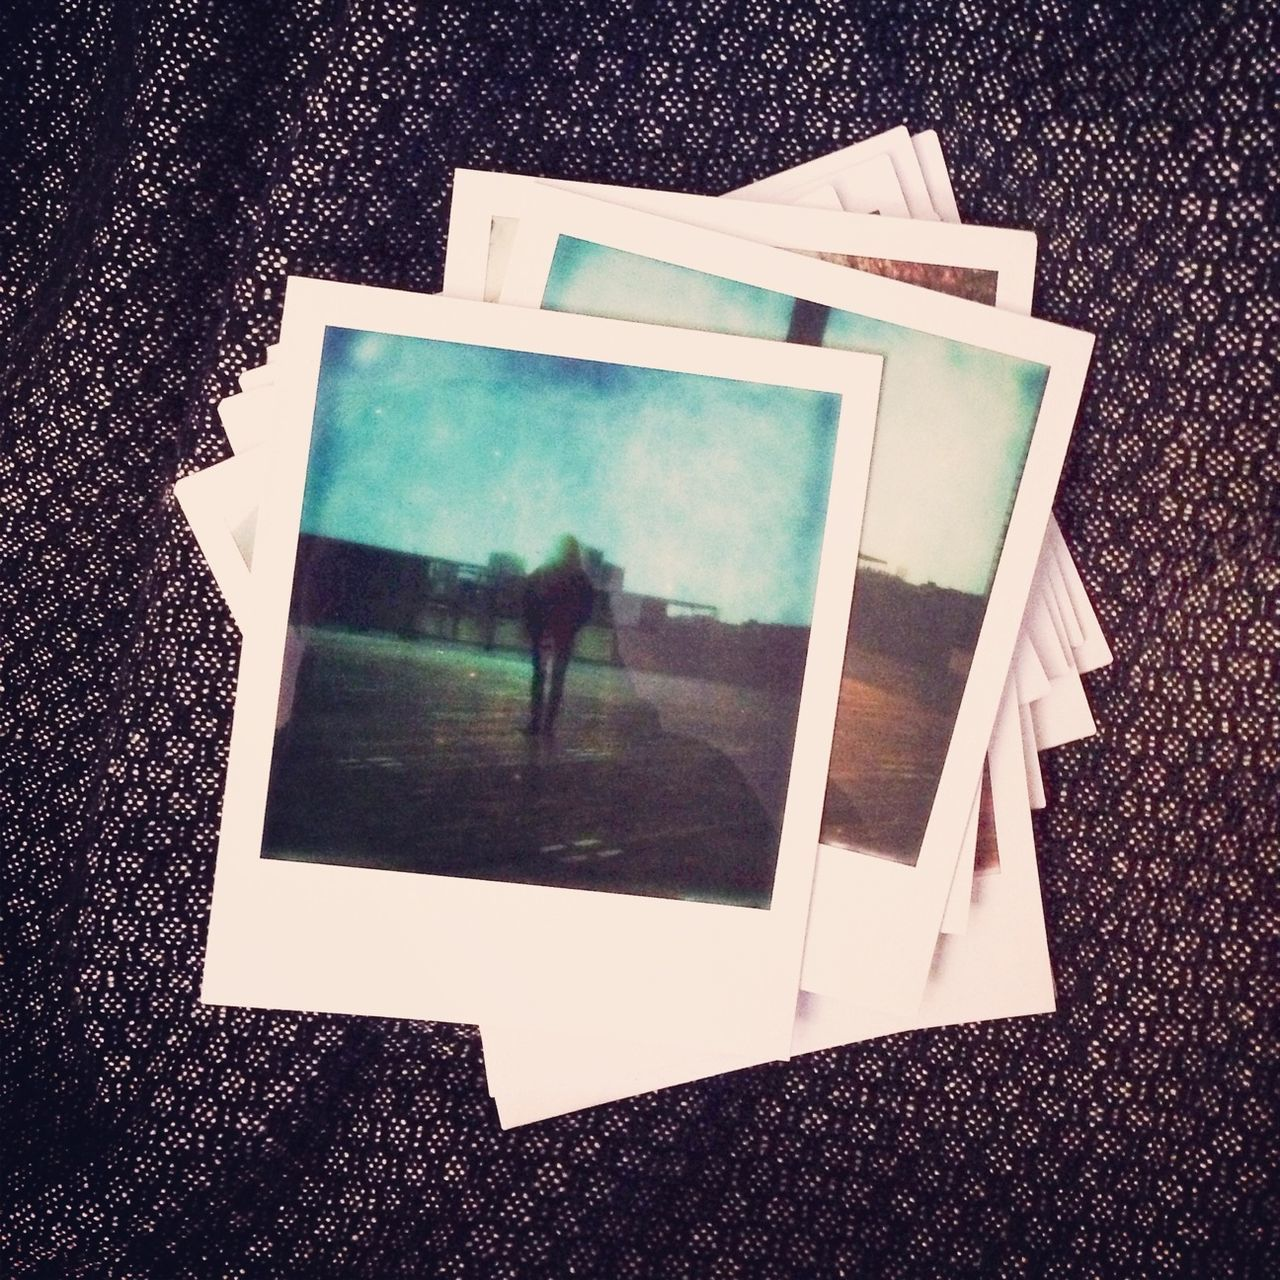 Polaroid Analogue Photography Stopping Time Impossible Project Timeless Process Disappearing Blurry Memories Souvenir Instant Moments Remember Vintage EyeEm Bestsellers